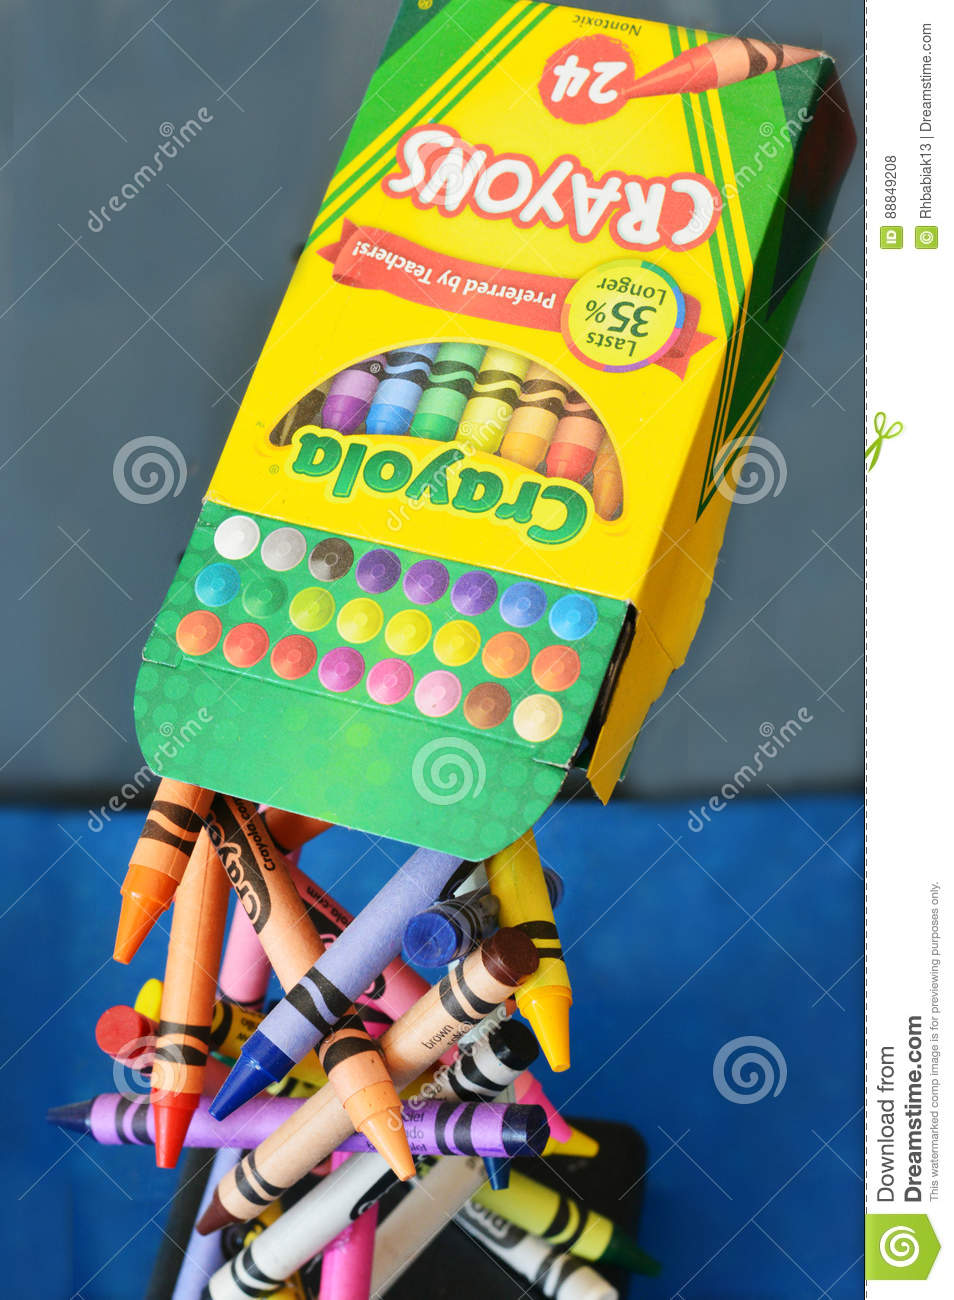 Crayola Crayons editorial stock photo. Image of coloring - 88849208